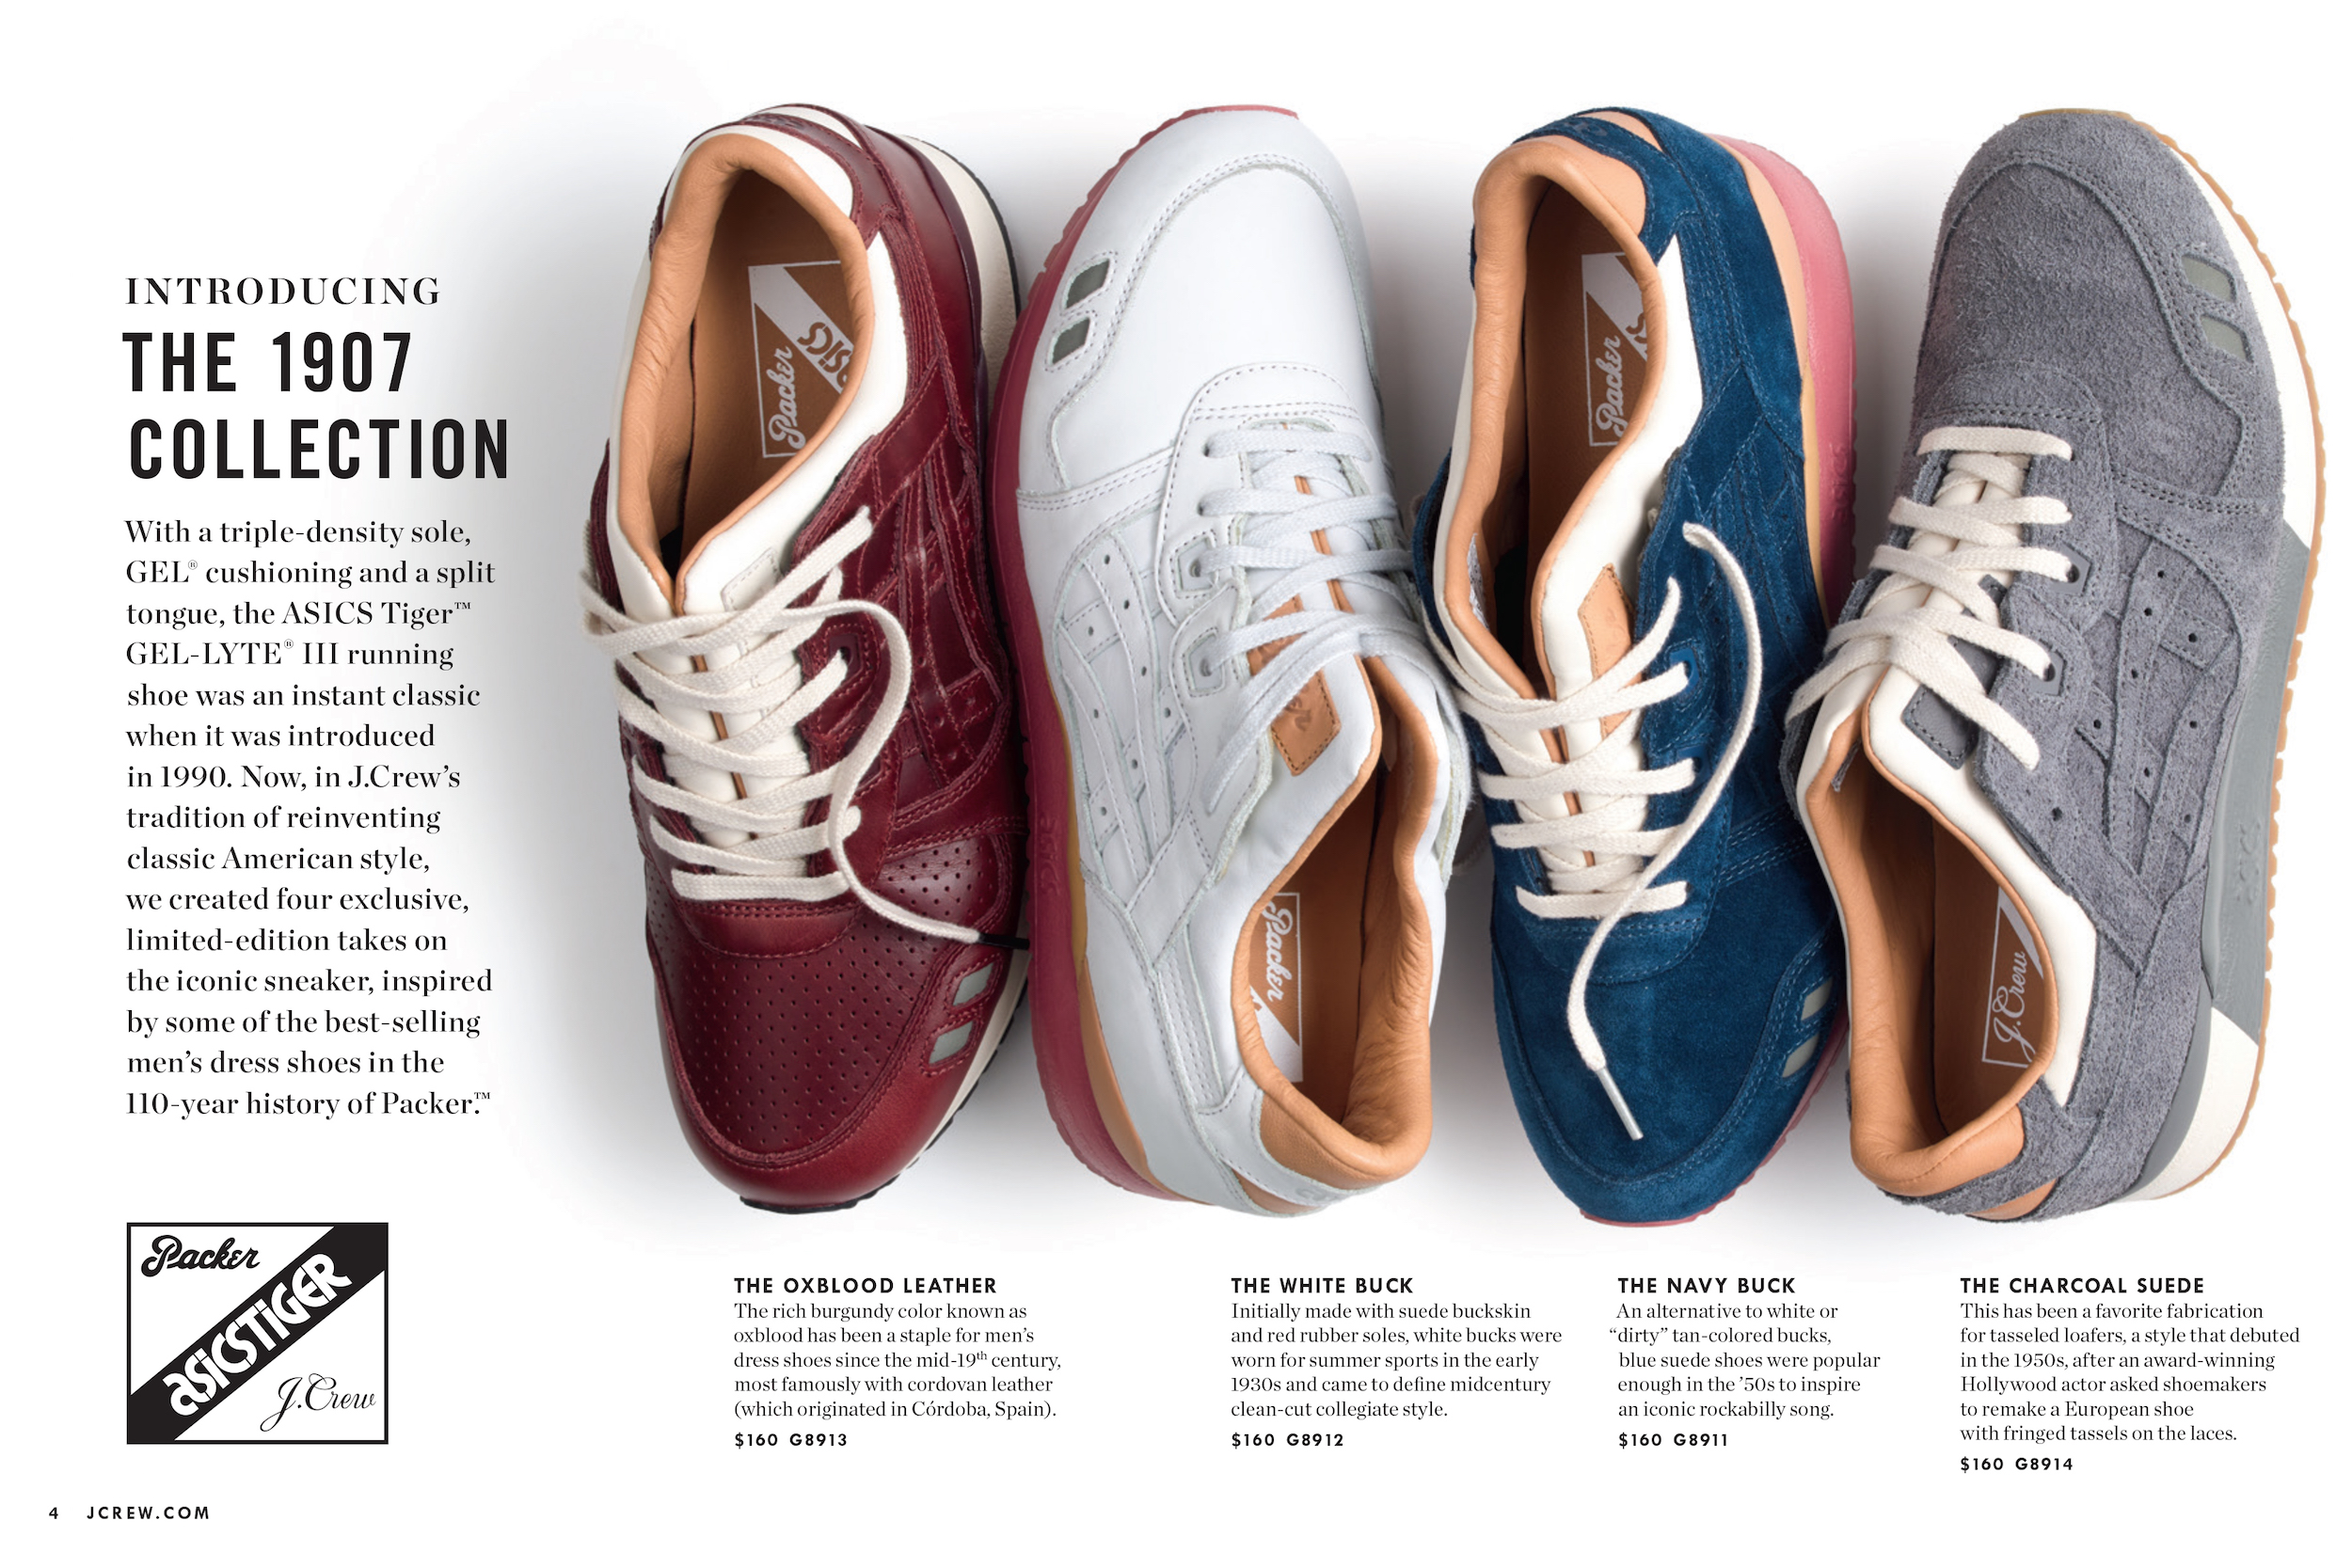 packer shoes jcrew asics tiger 1907 collection 1